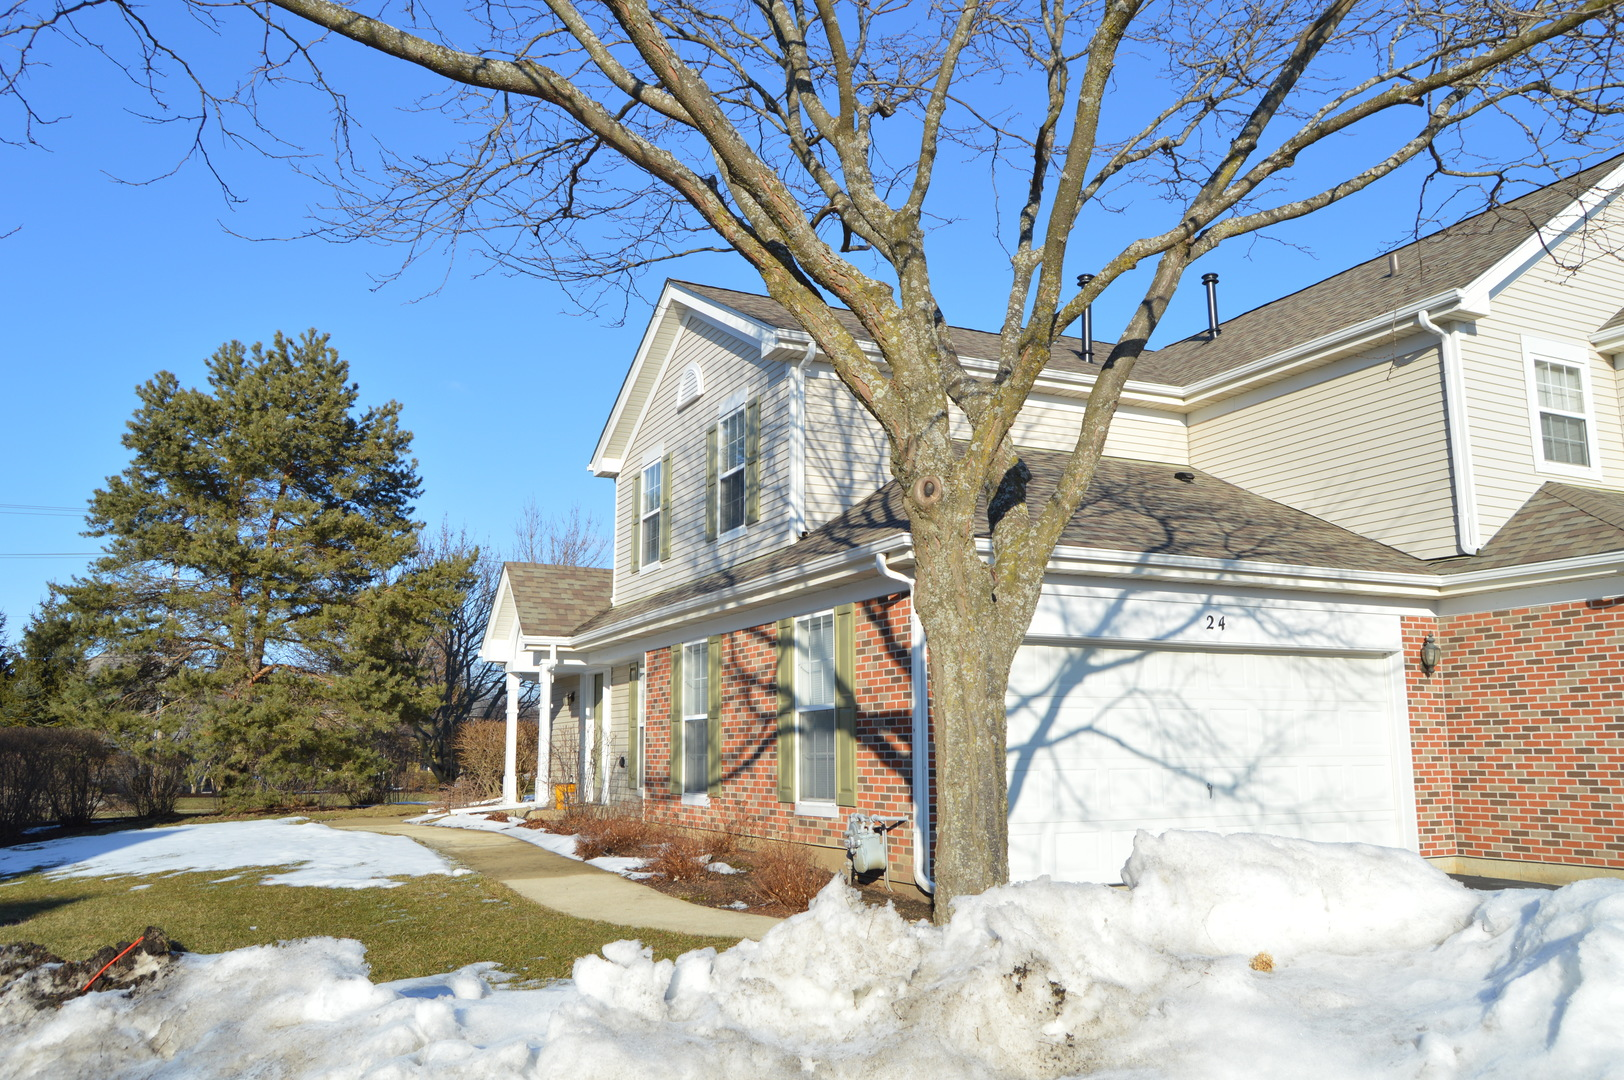 Photo for 24 Peach Tree Court, Unit Number 24, Algonquin, IL 60102 (MLS # 10633682)